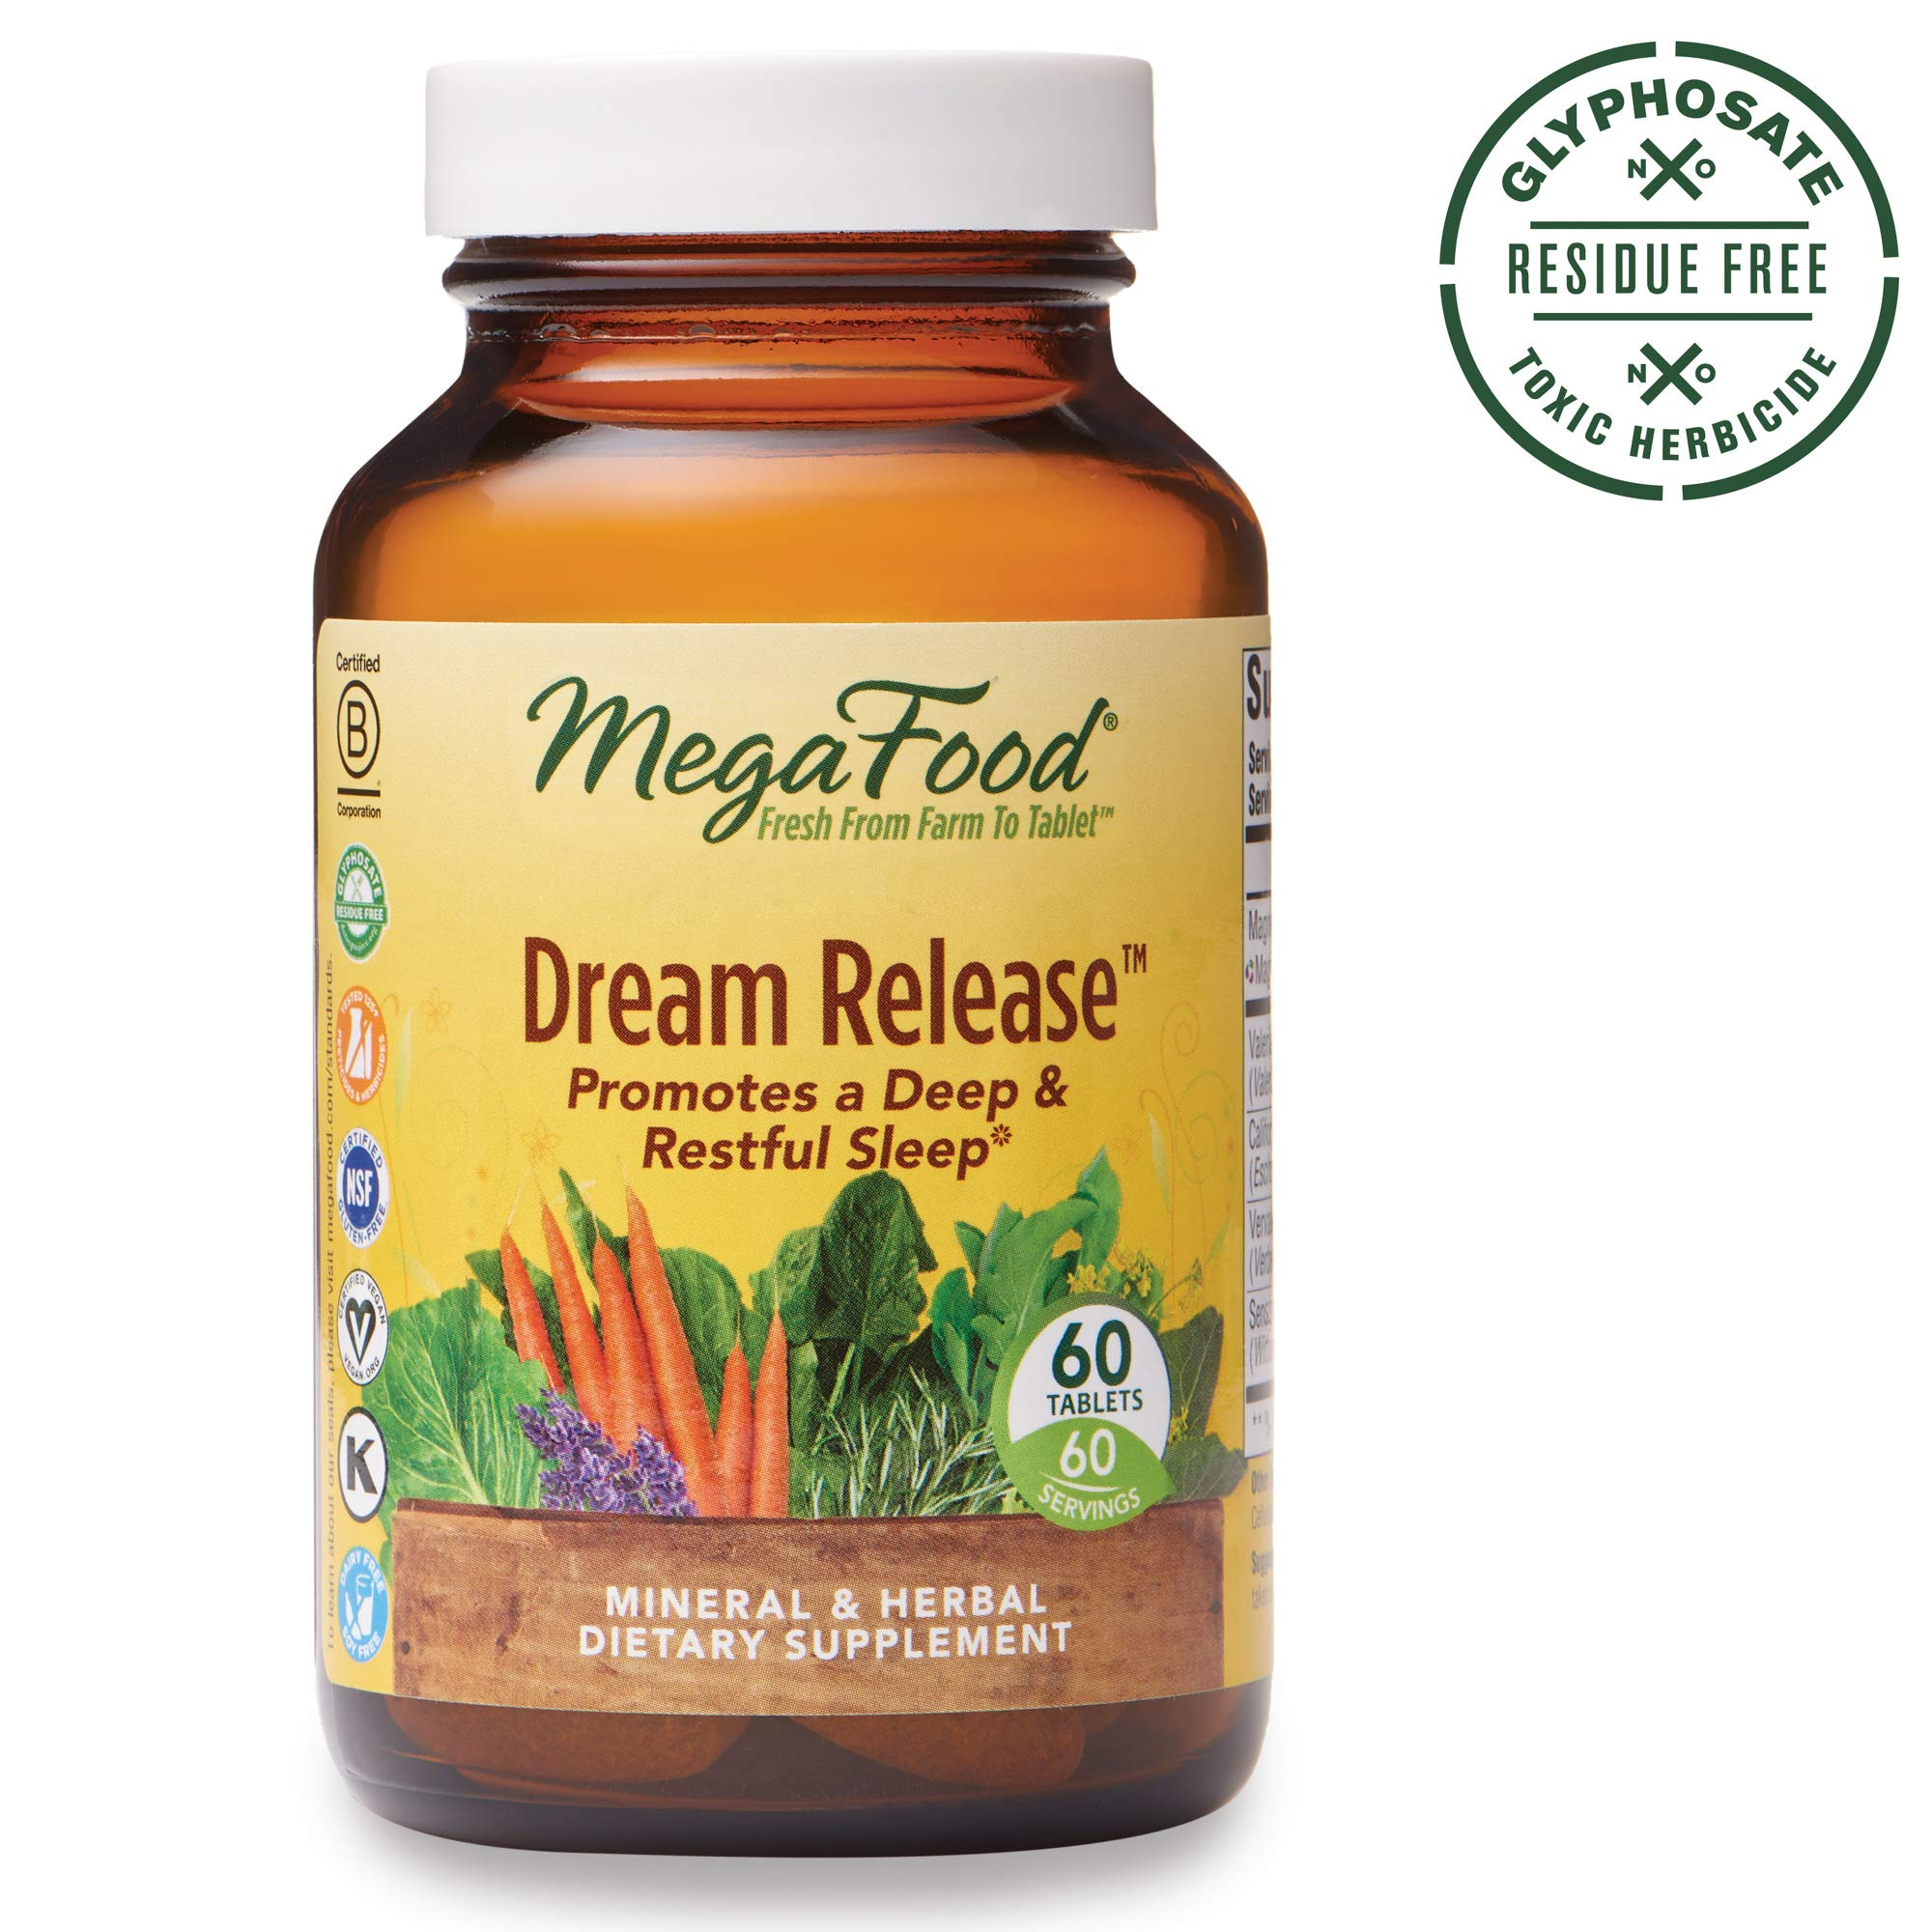 MegaFood, Dream Release, Promotes a Restful Sleep and Relaxation, Sleep Aid Herb and Mineral Supplement, Gluten Free, Vegan, 60 Tablets (60 Servings) (FFP) by MegaFood